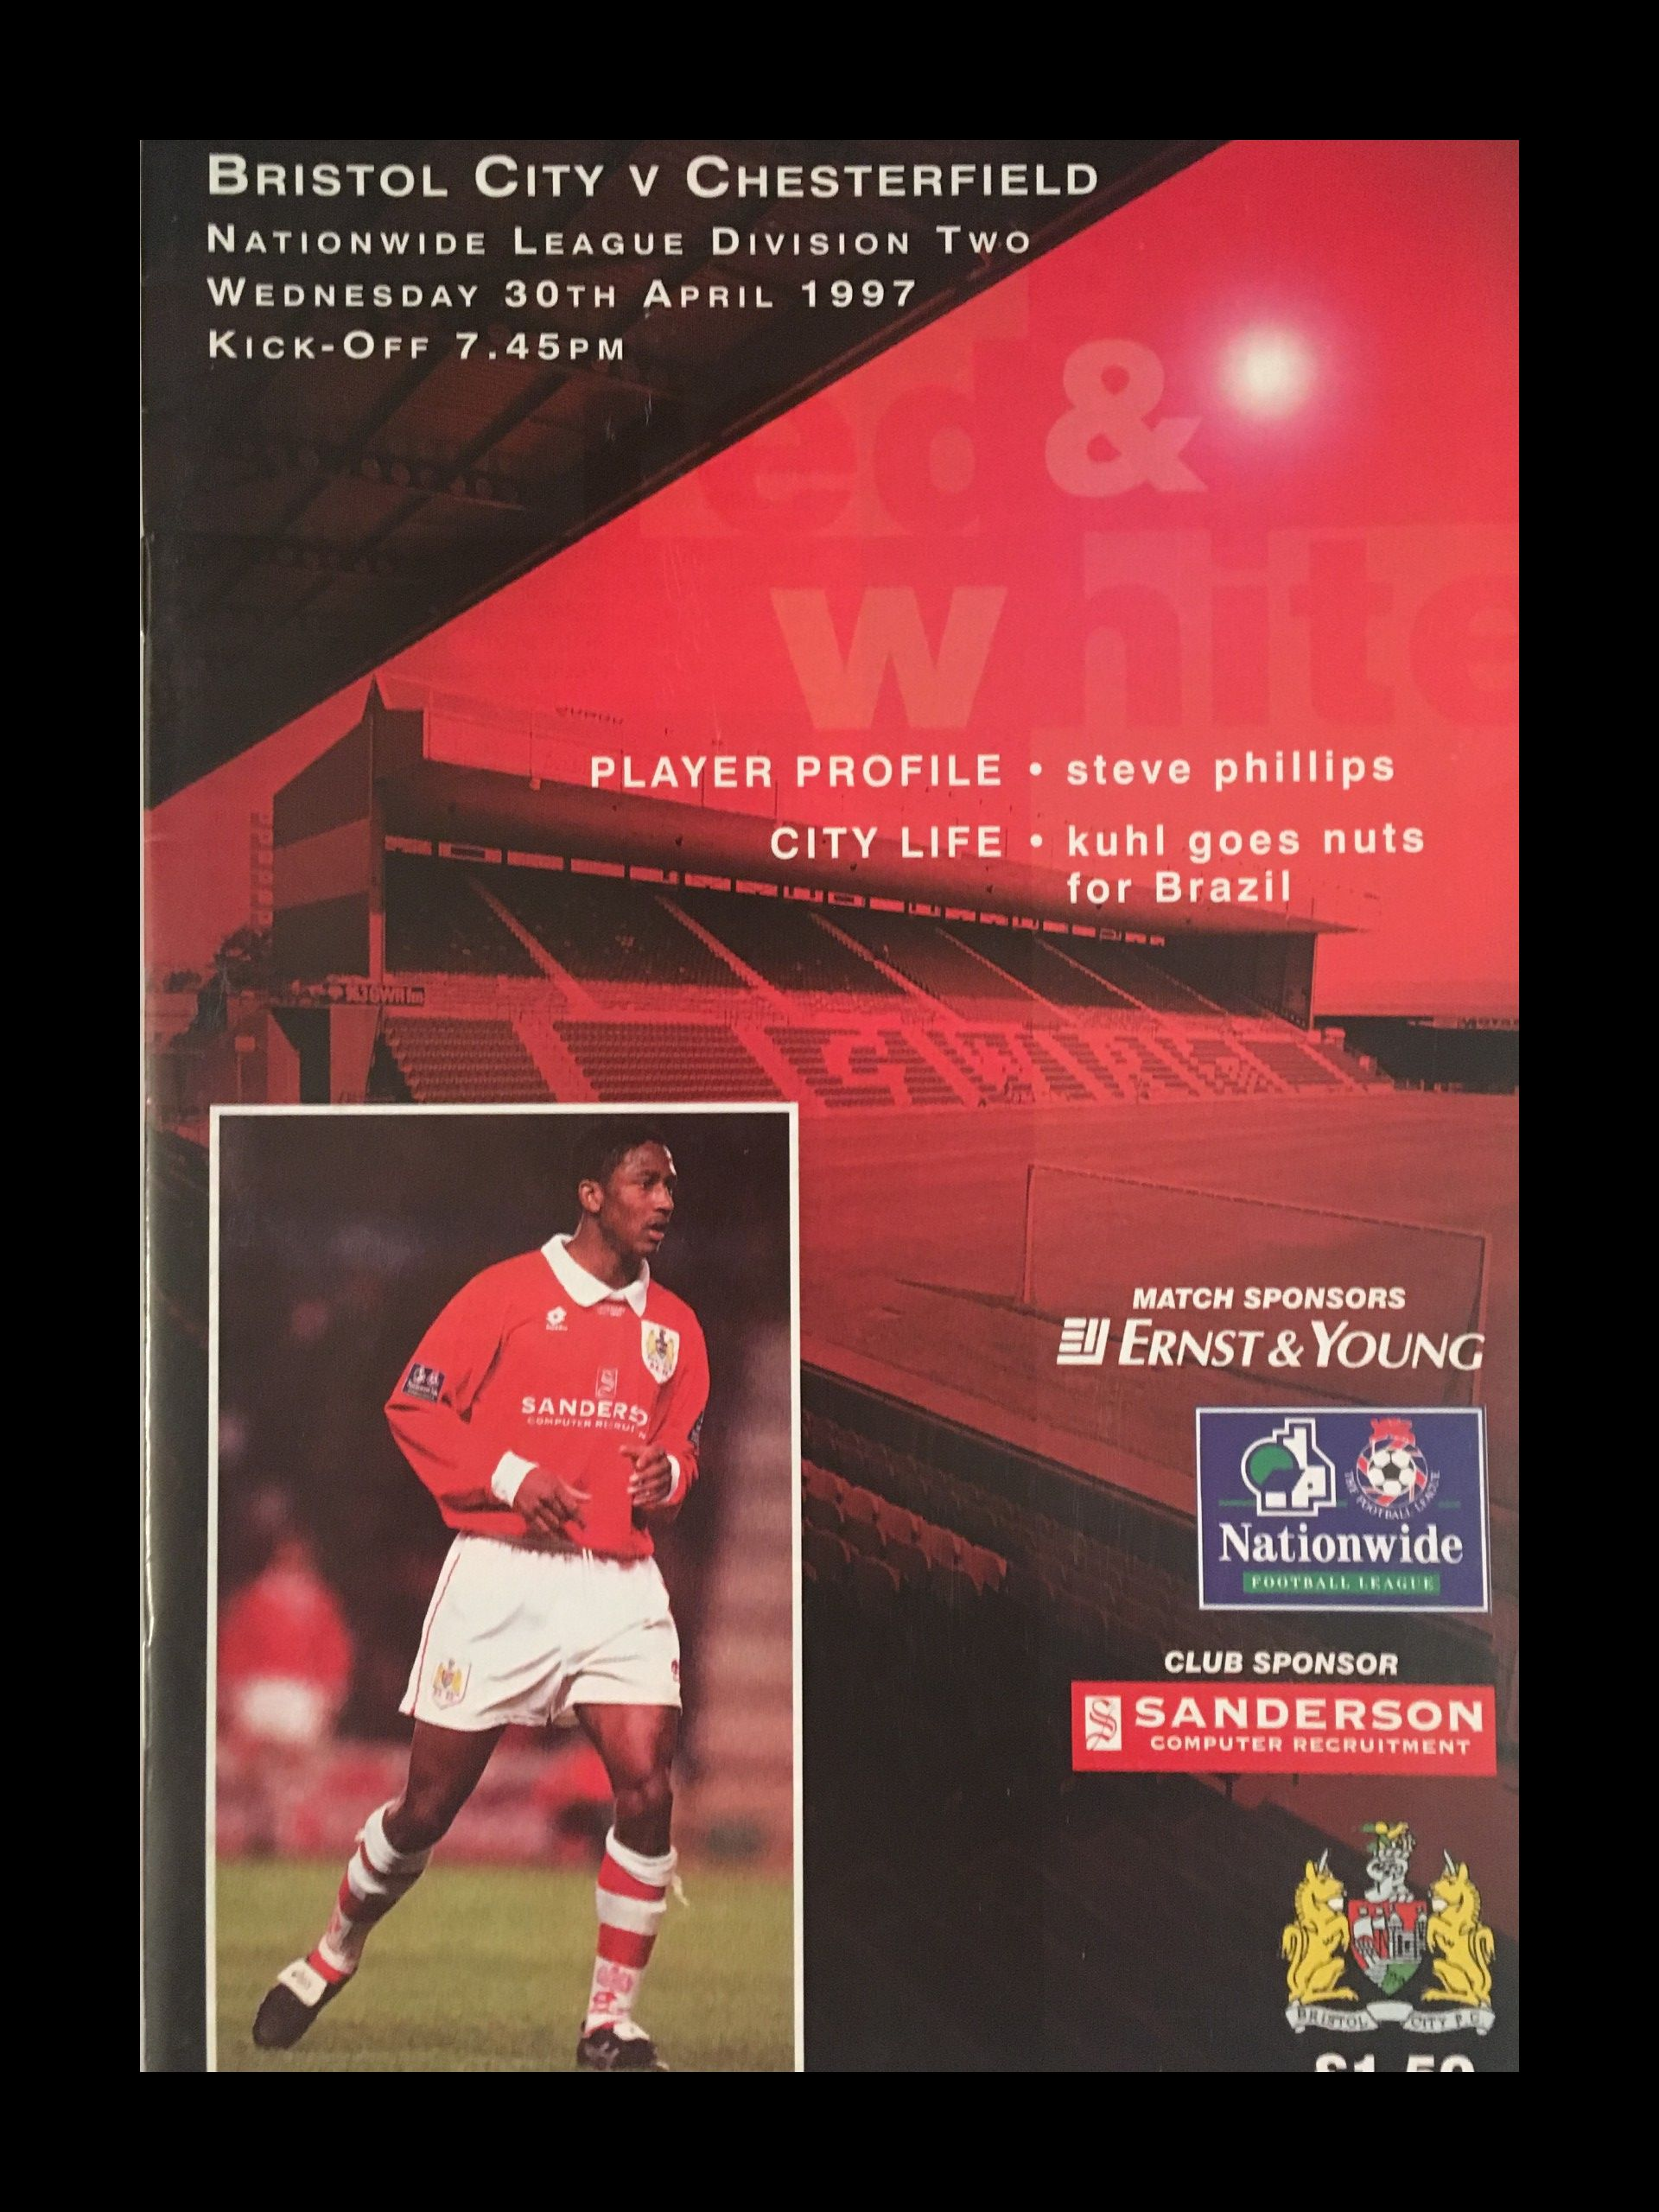 Bristol City v Chesterfield 30-04-1997 Programme